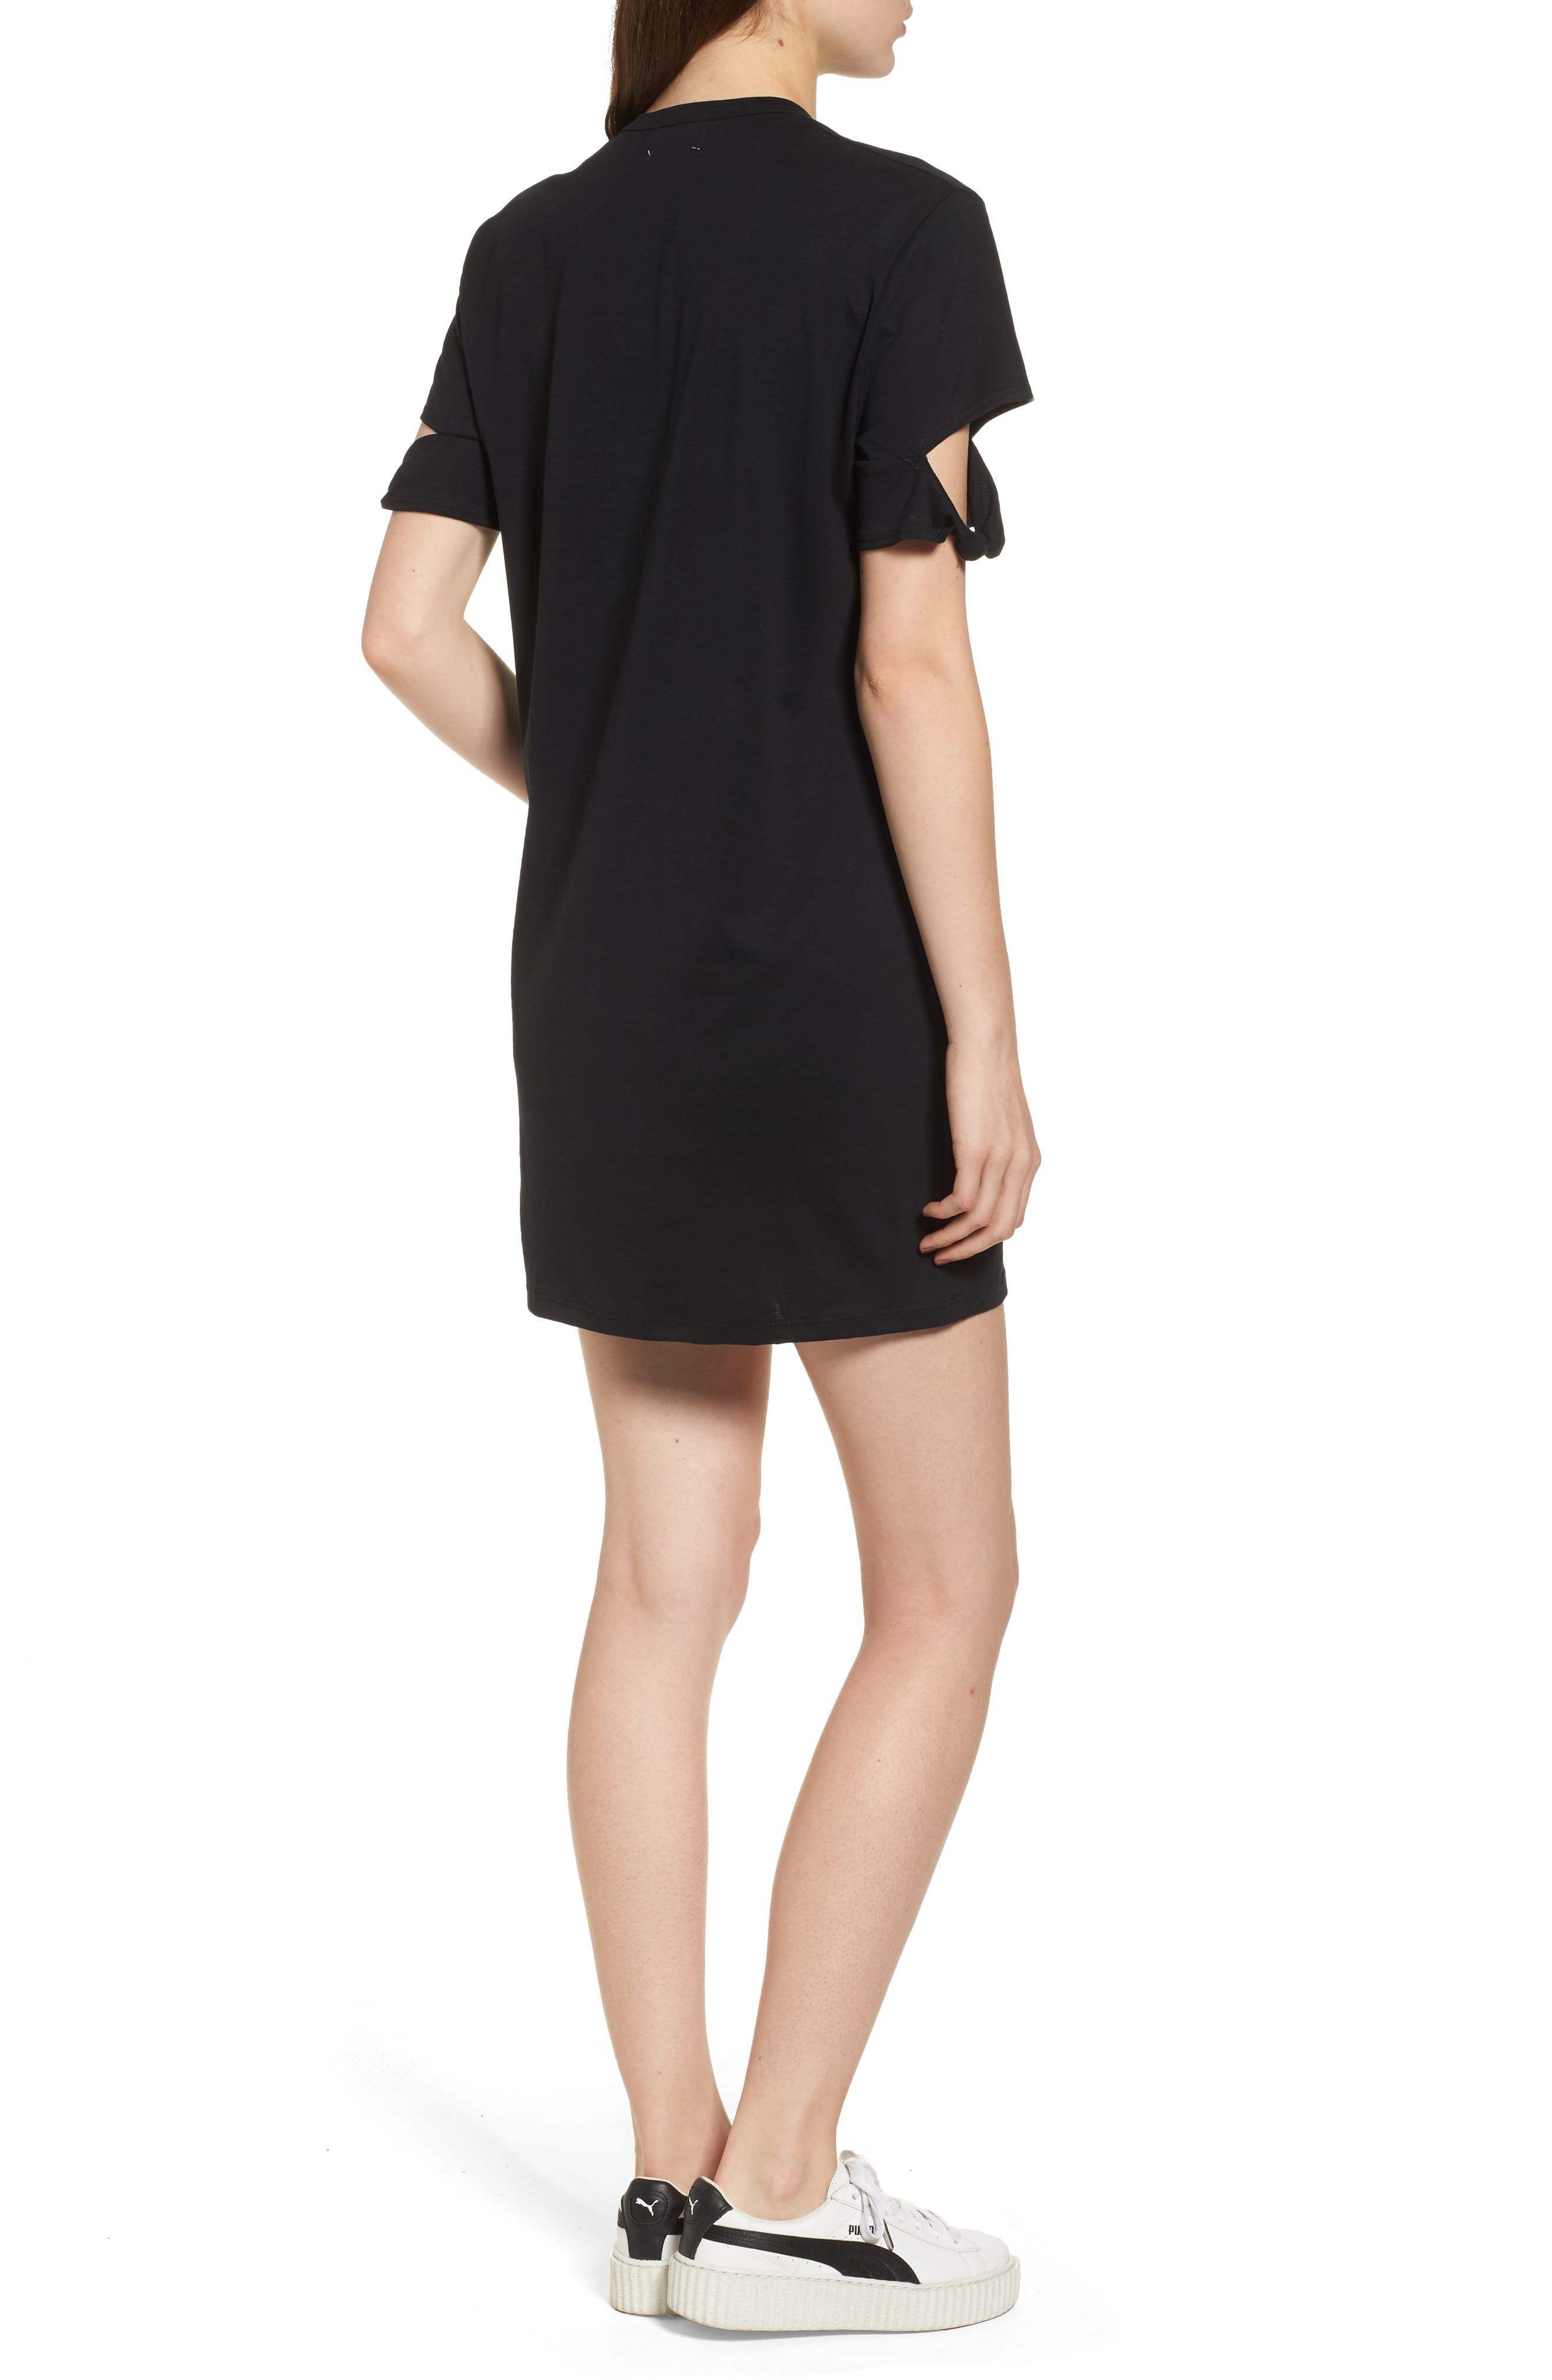 Knotted Sleeve T-Shirt Dress,                             Alternate thumbnail 2, color,                             001